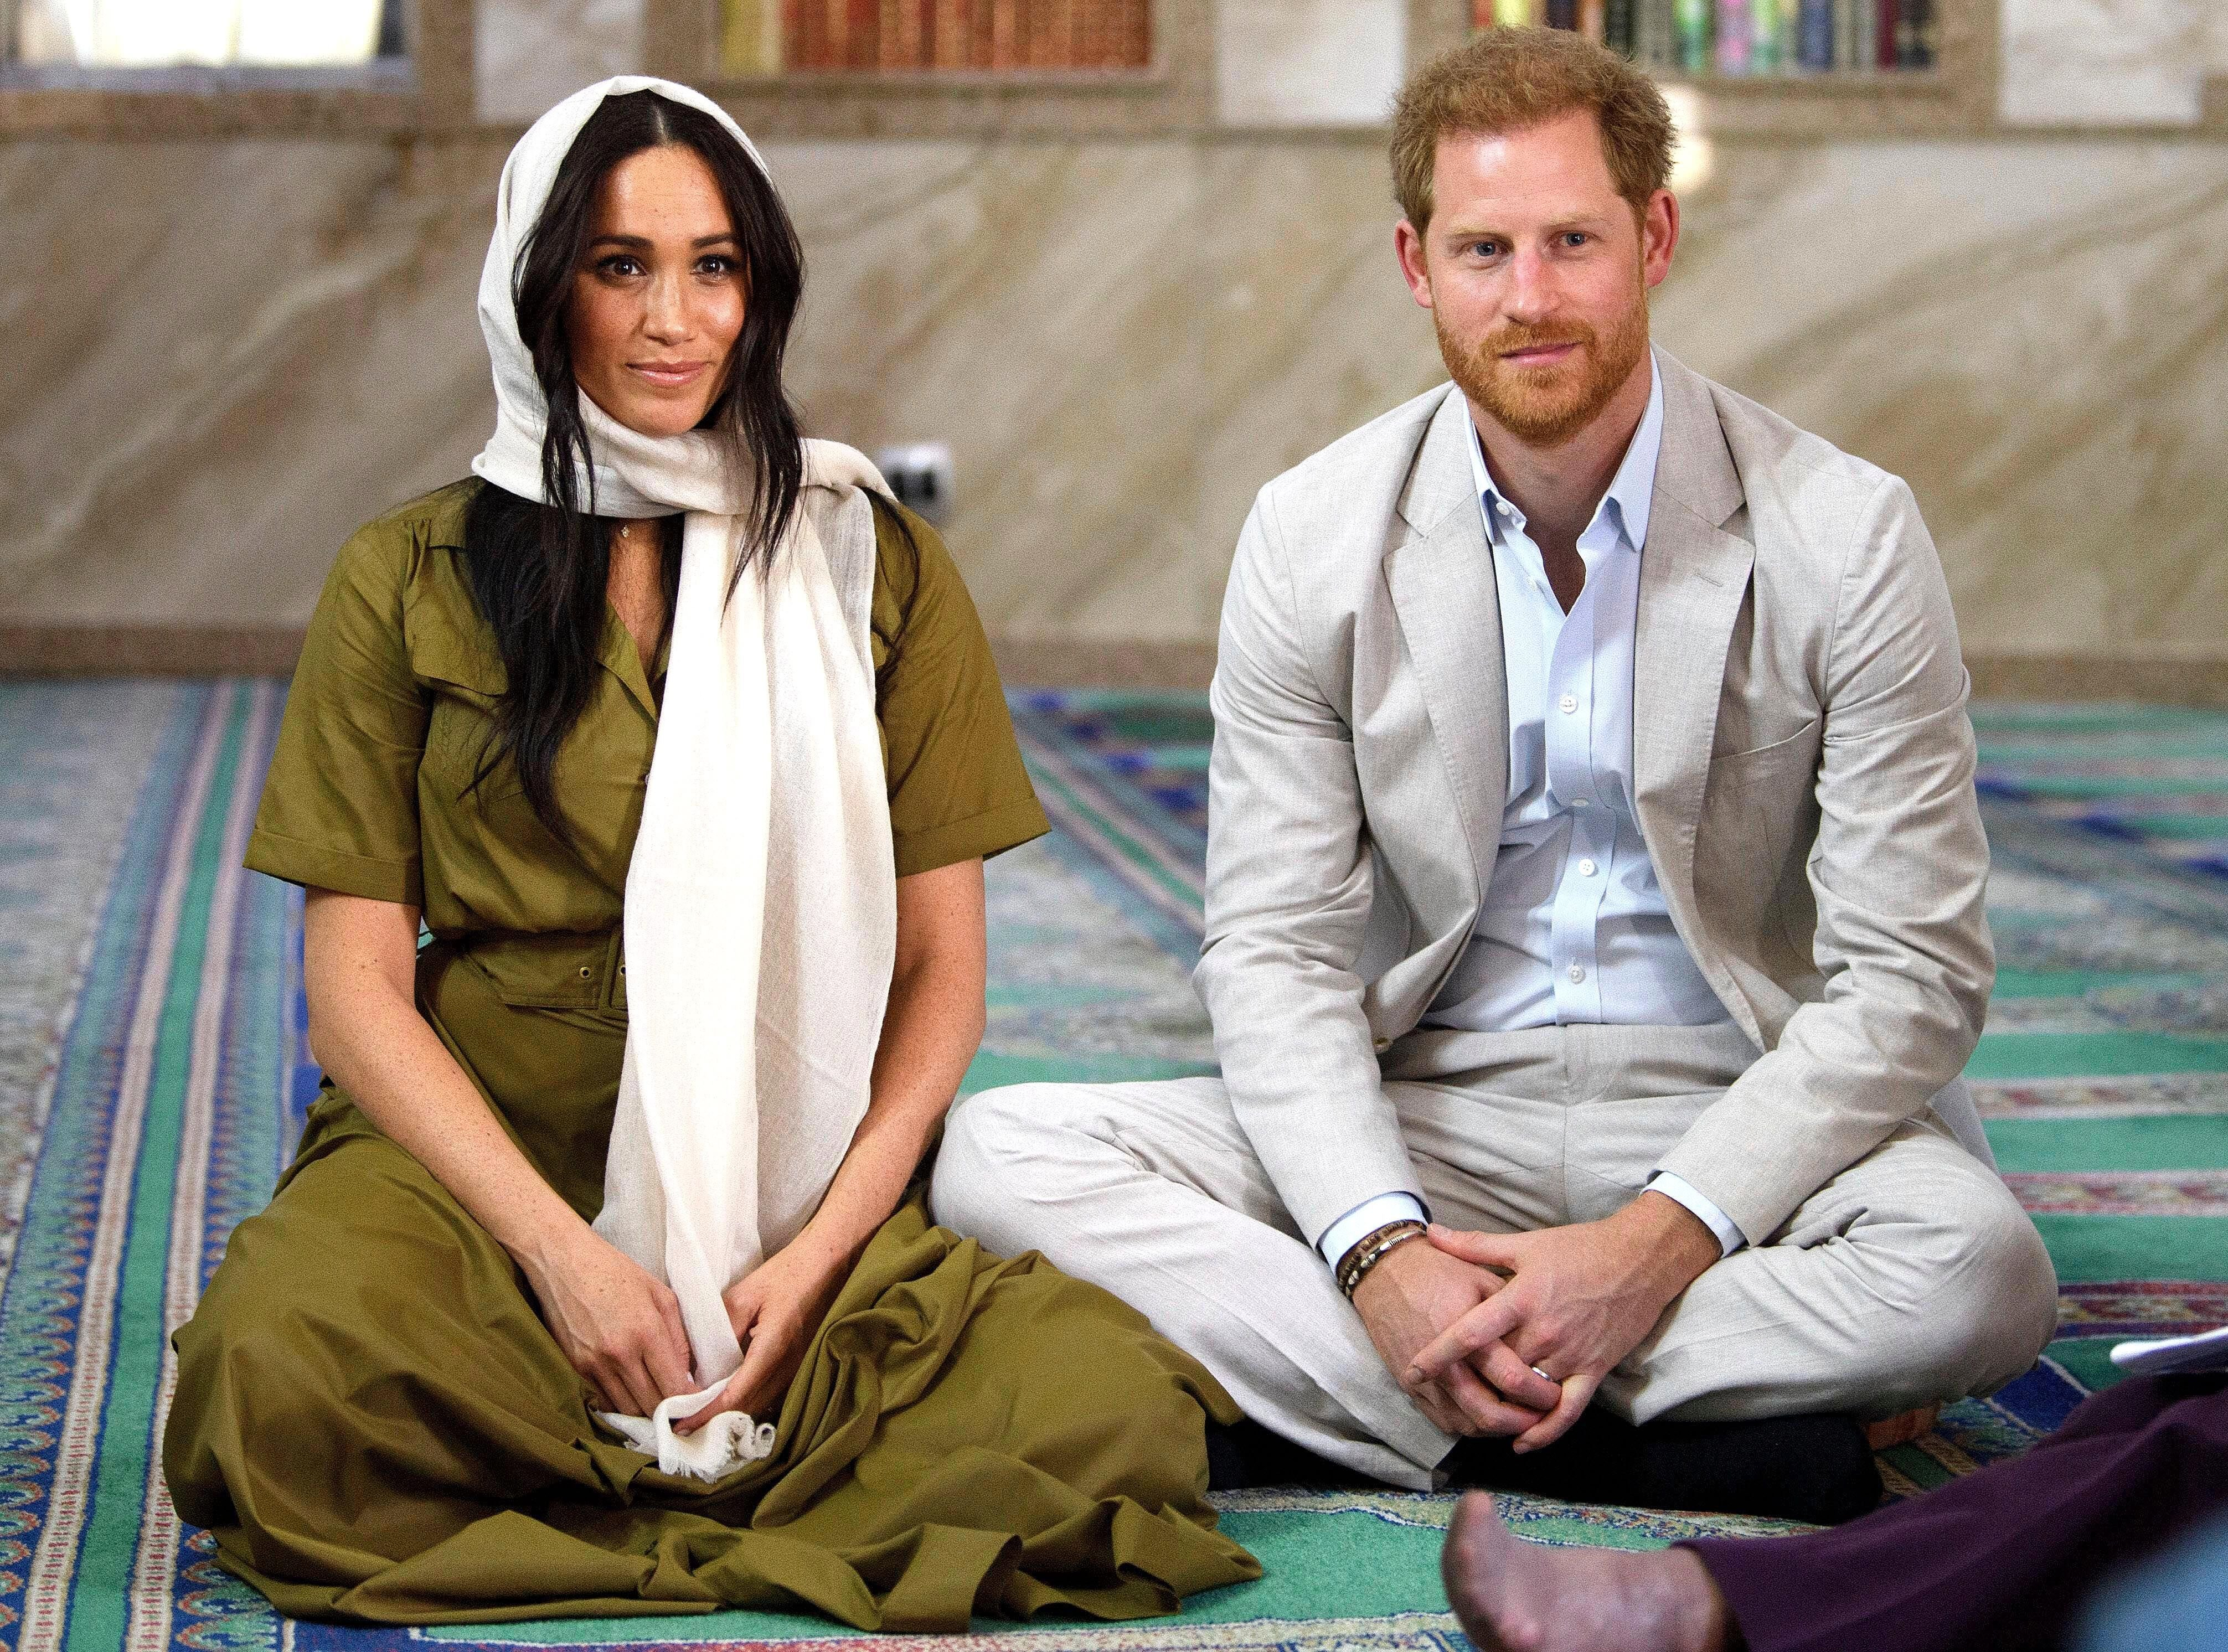 Meghan Markle and Prince Harry at the Auwal Mosque, South Africa. | Source: Getty Images